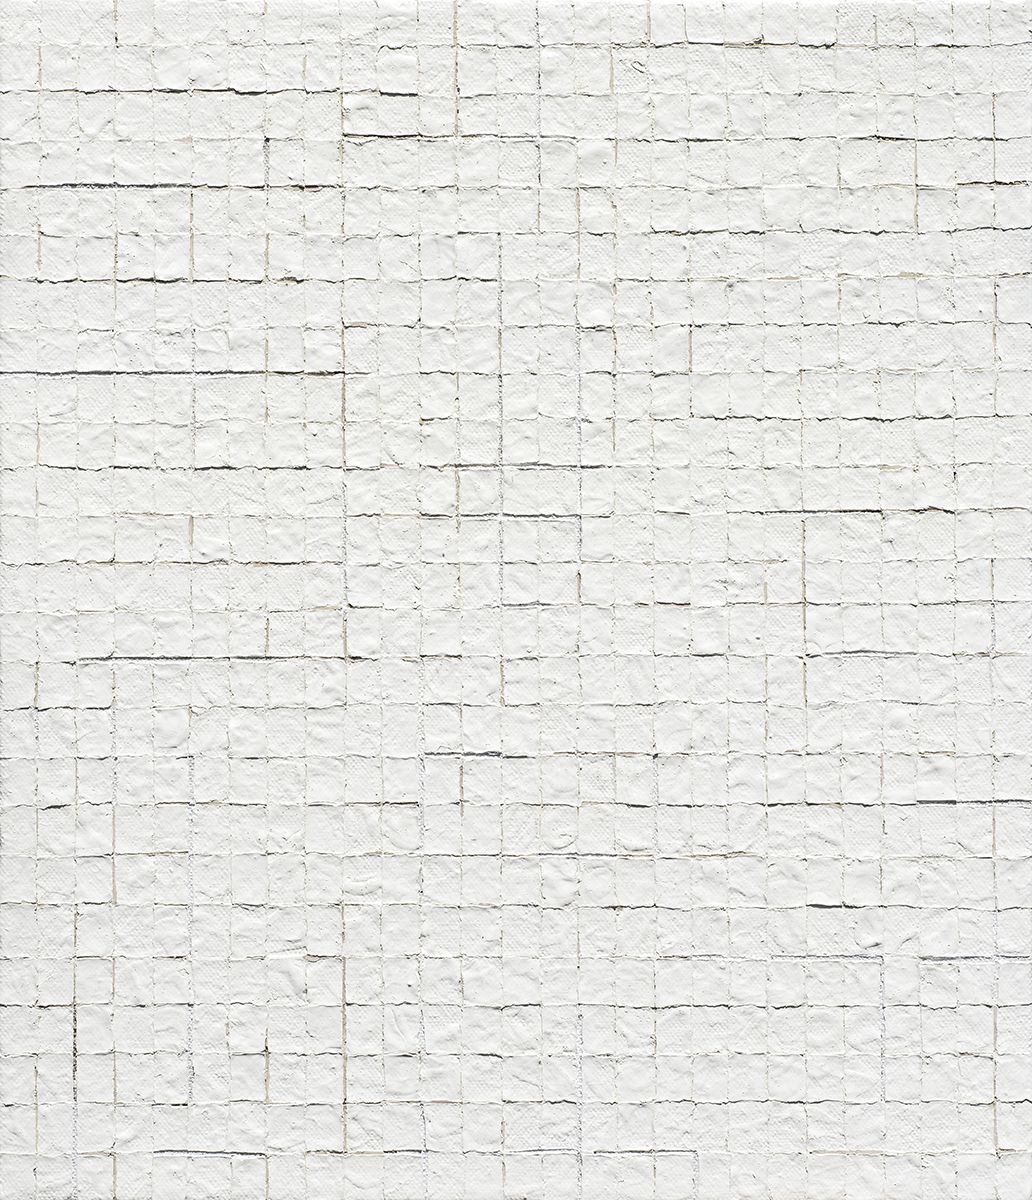 Chung Sang-Hwa Untitled 2015-03-02, 2015 Acrylic and kaolin on canvas 20 7/8 x 17 7/8 inches (53 x 45.5 cm)